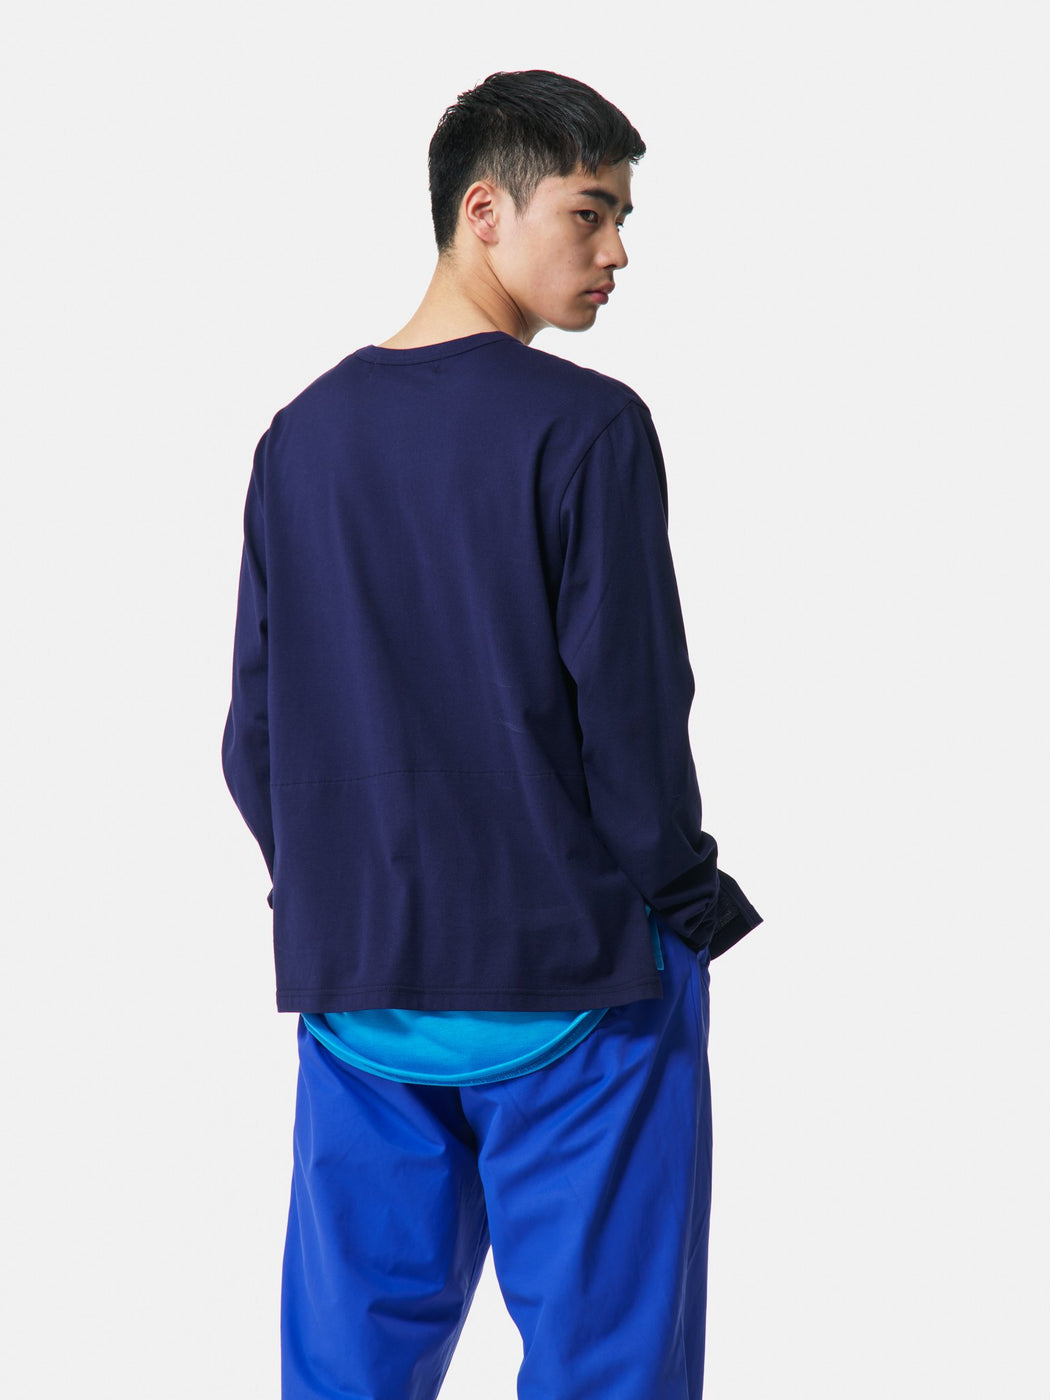 ALOYE Shirt Fabrics Long Sleeve Layerd T-shirt Navy